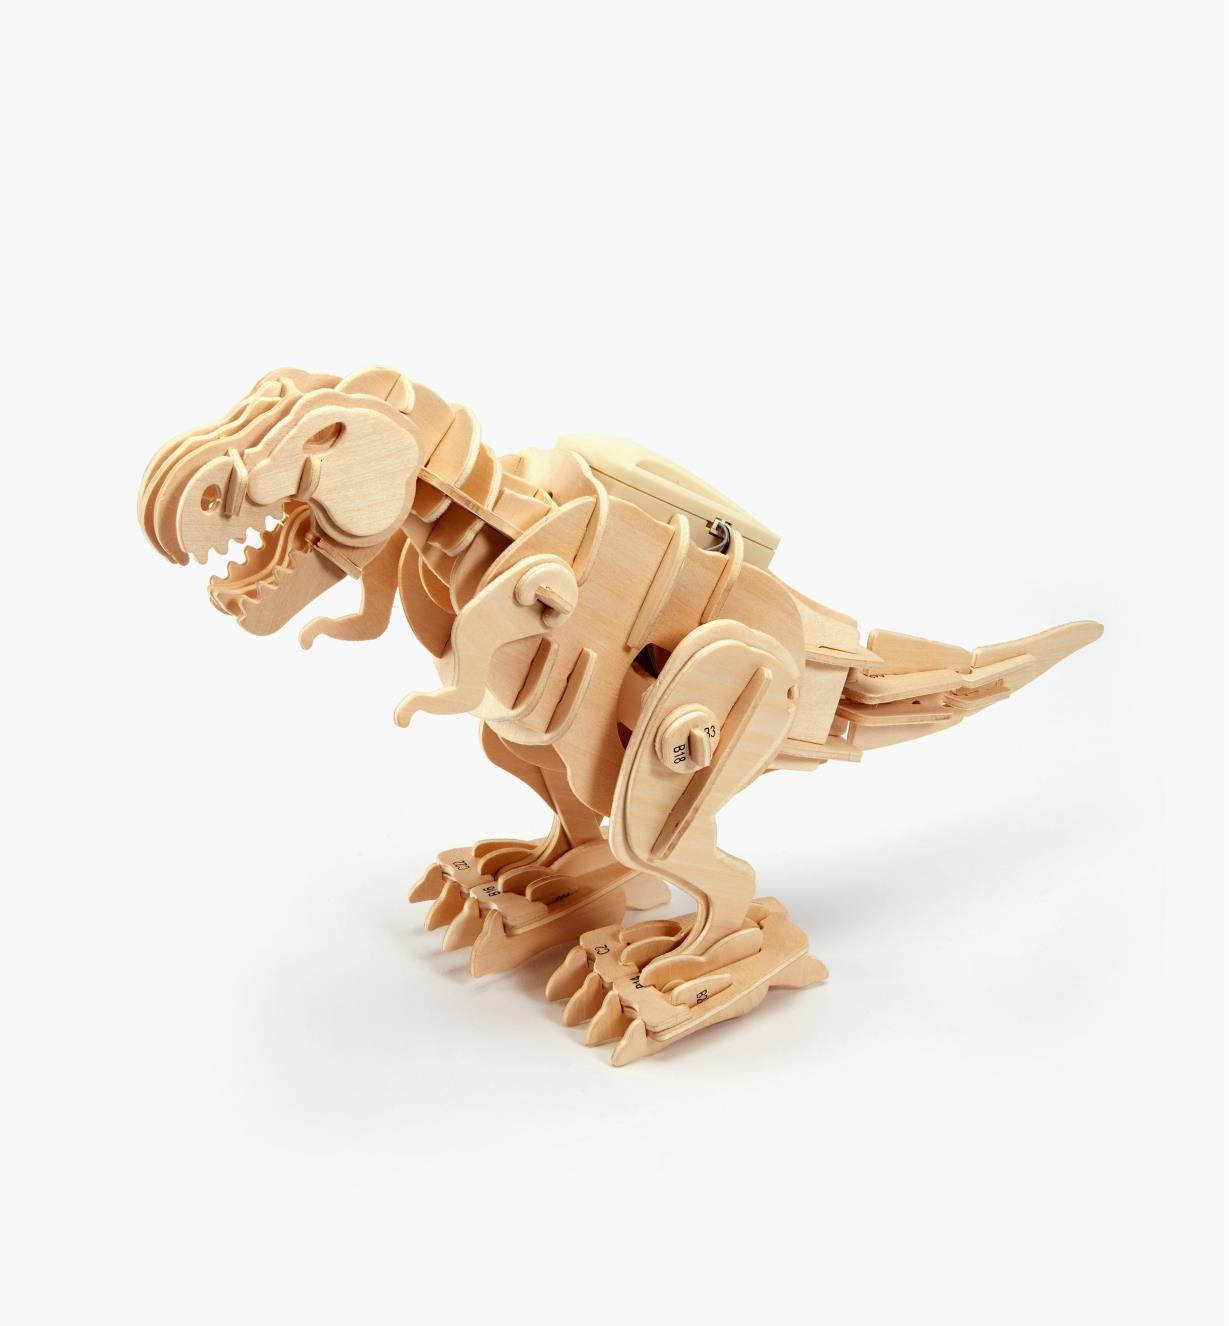 45K5040 - Walking T-Rex Model Kit